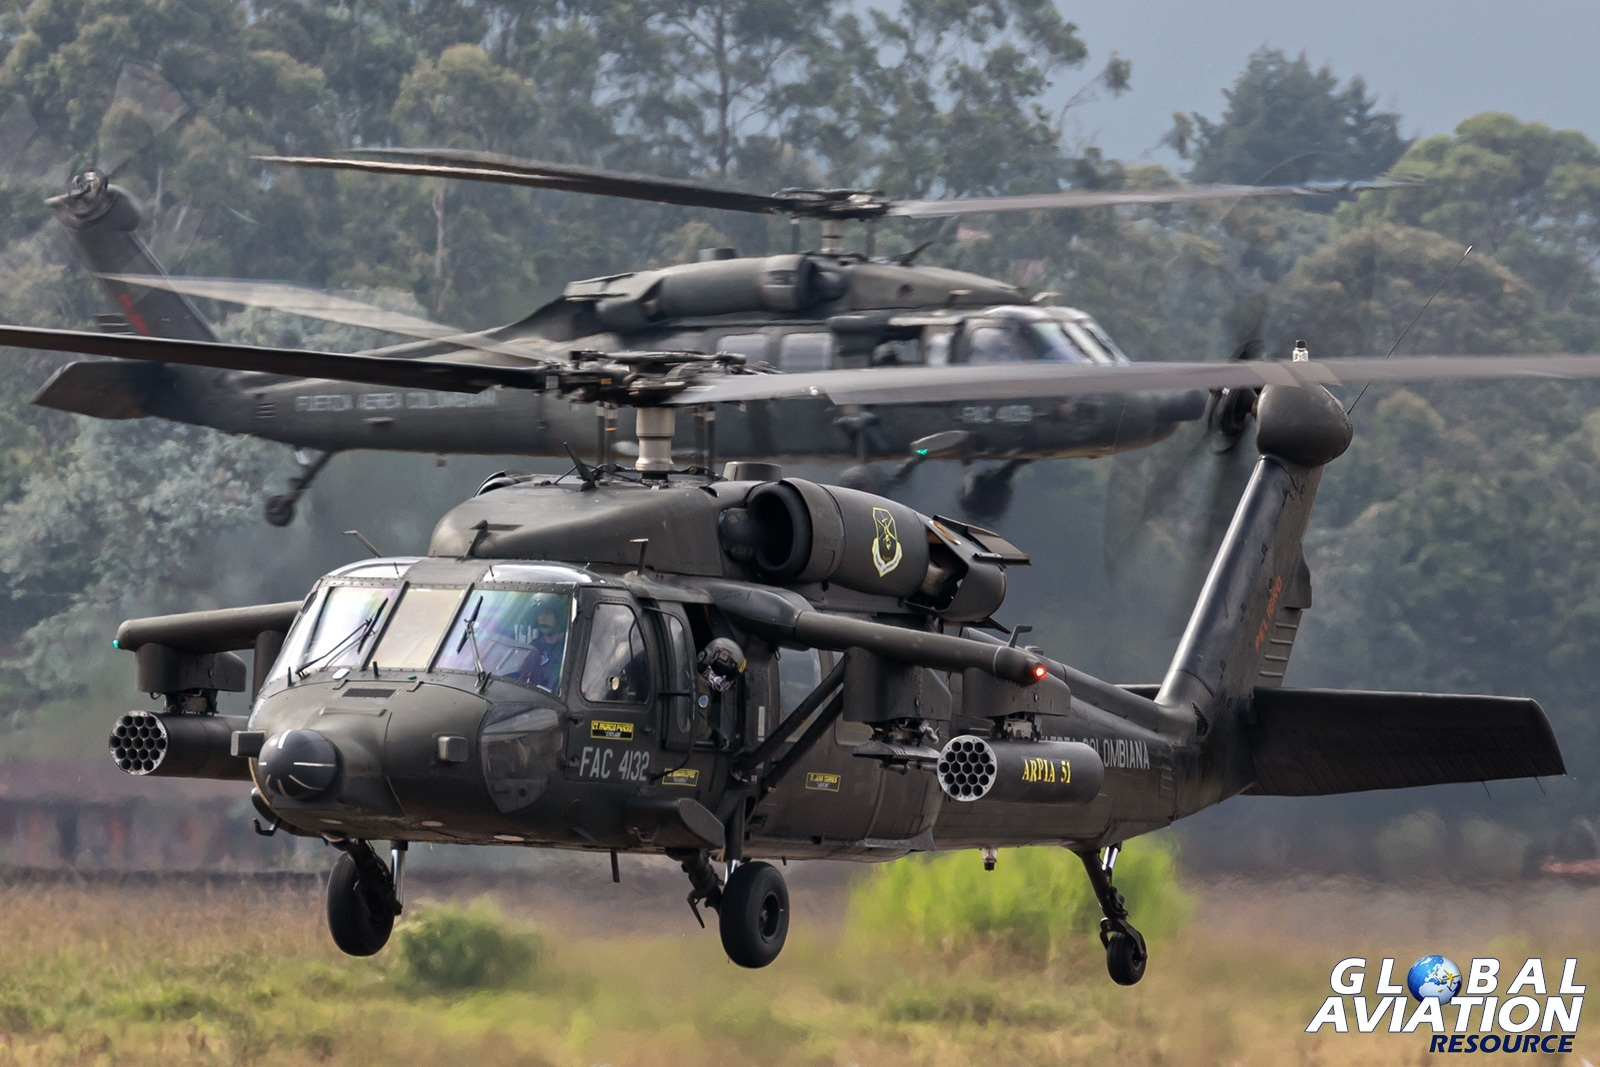 Colombian Air Force AH-60L - © Paul Filmer, Global Aviation Resource